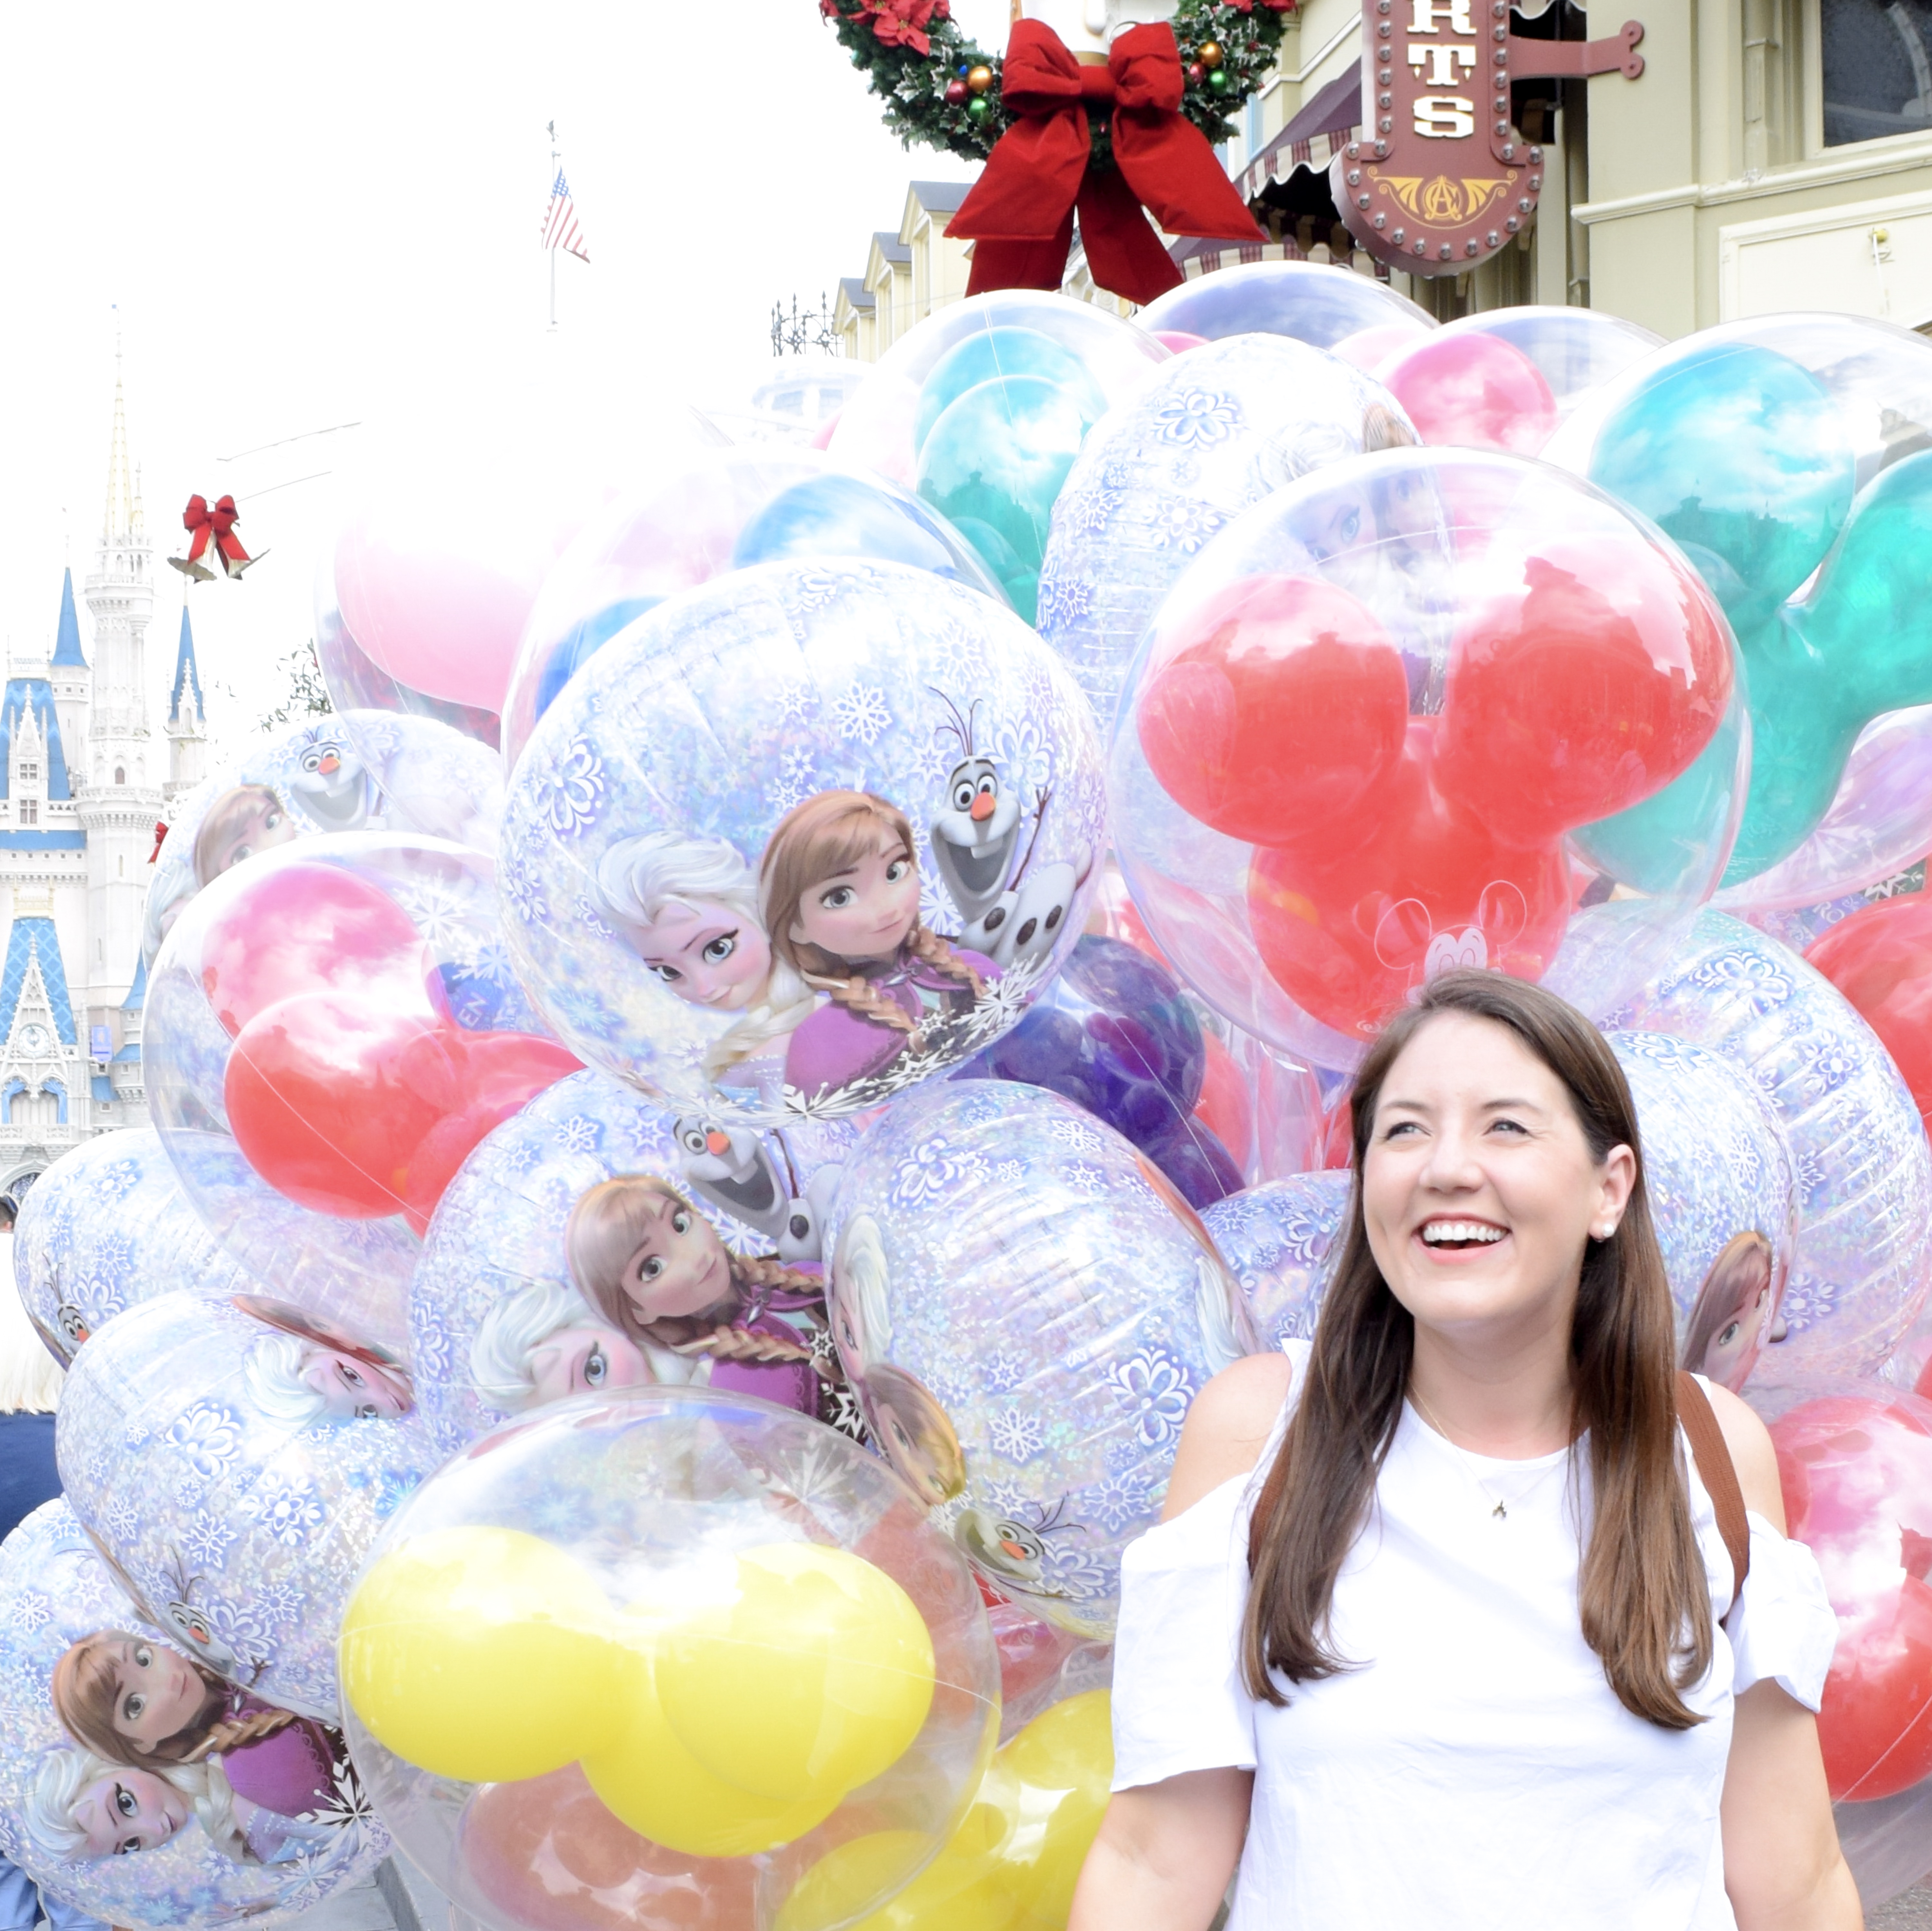 Top 10 places to take a photo in Disney World: Take A Photo With Disney Balloons